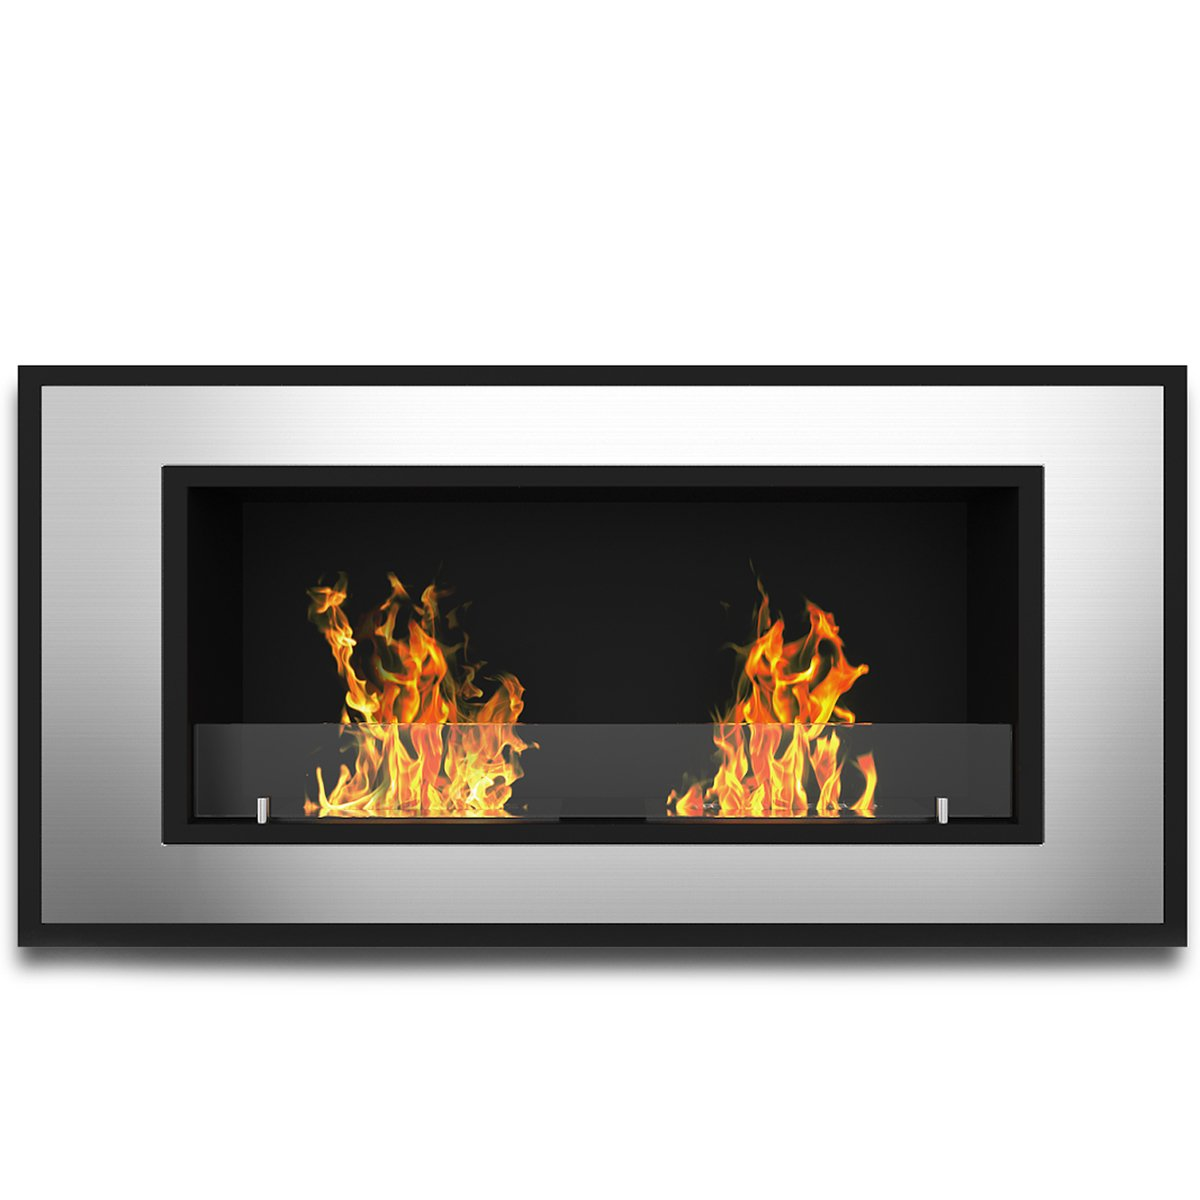 Regal Flame Brooks 47 Inch Ventless Built In Recessed Bio Ethanol Wall Mounted Fireplace by Regal Flame